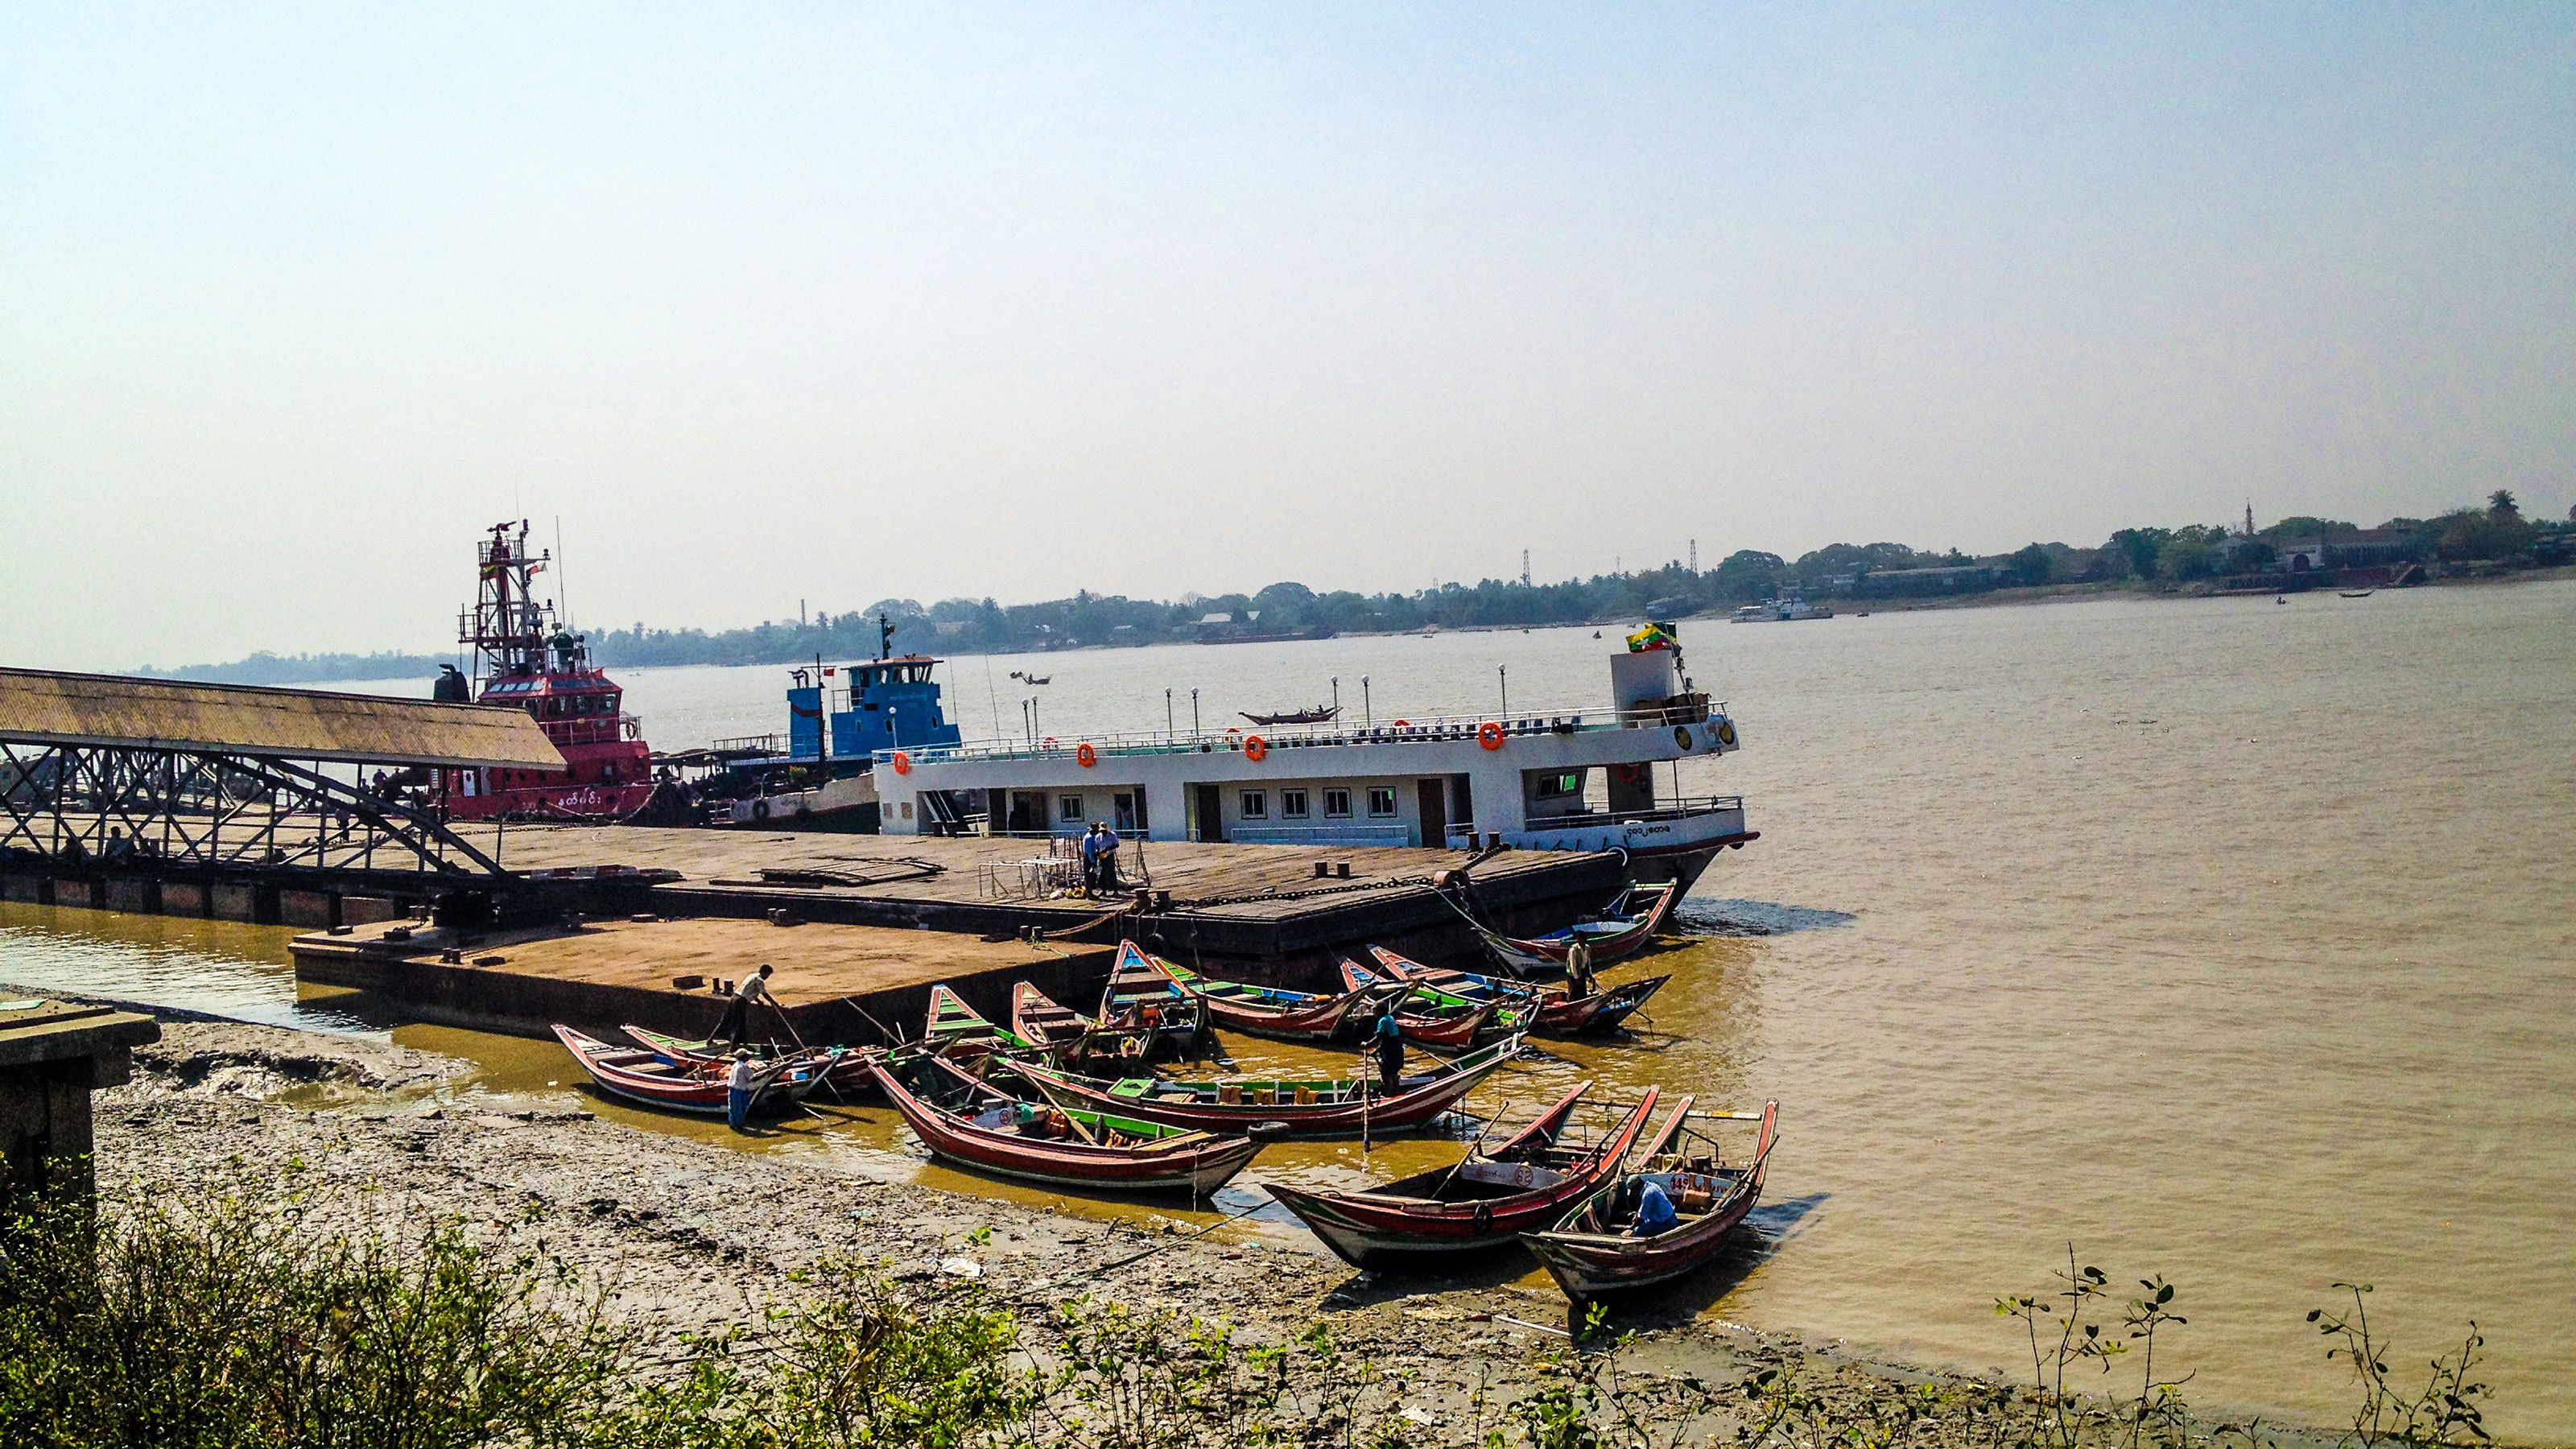 Boats docked on the bank of the Yangon River in Myanamar